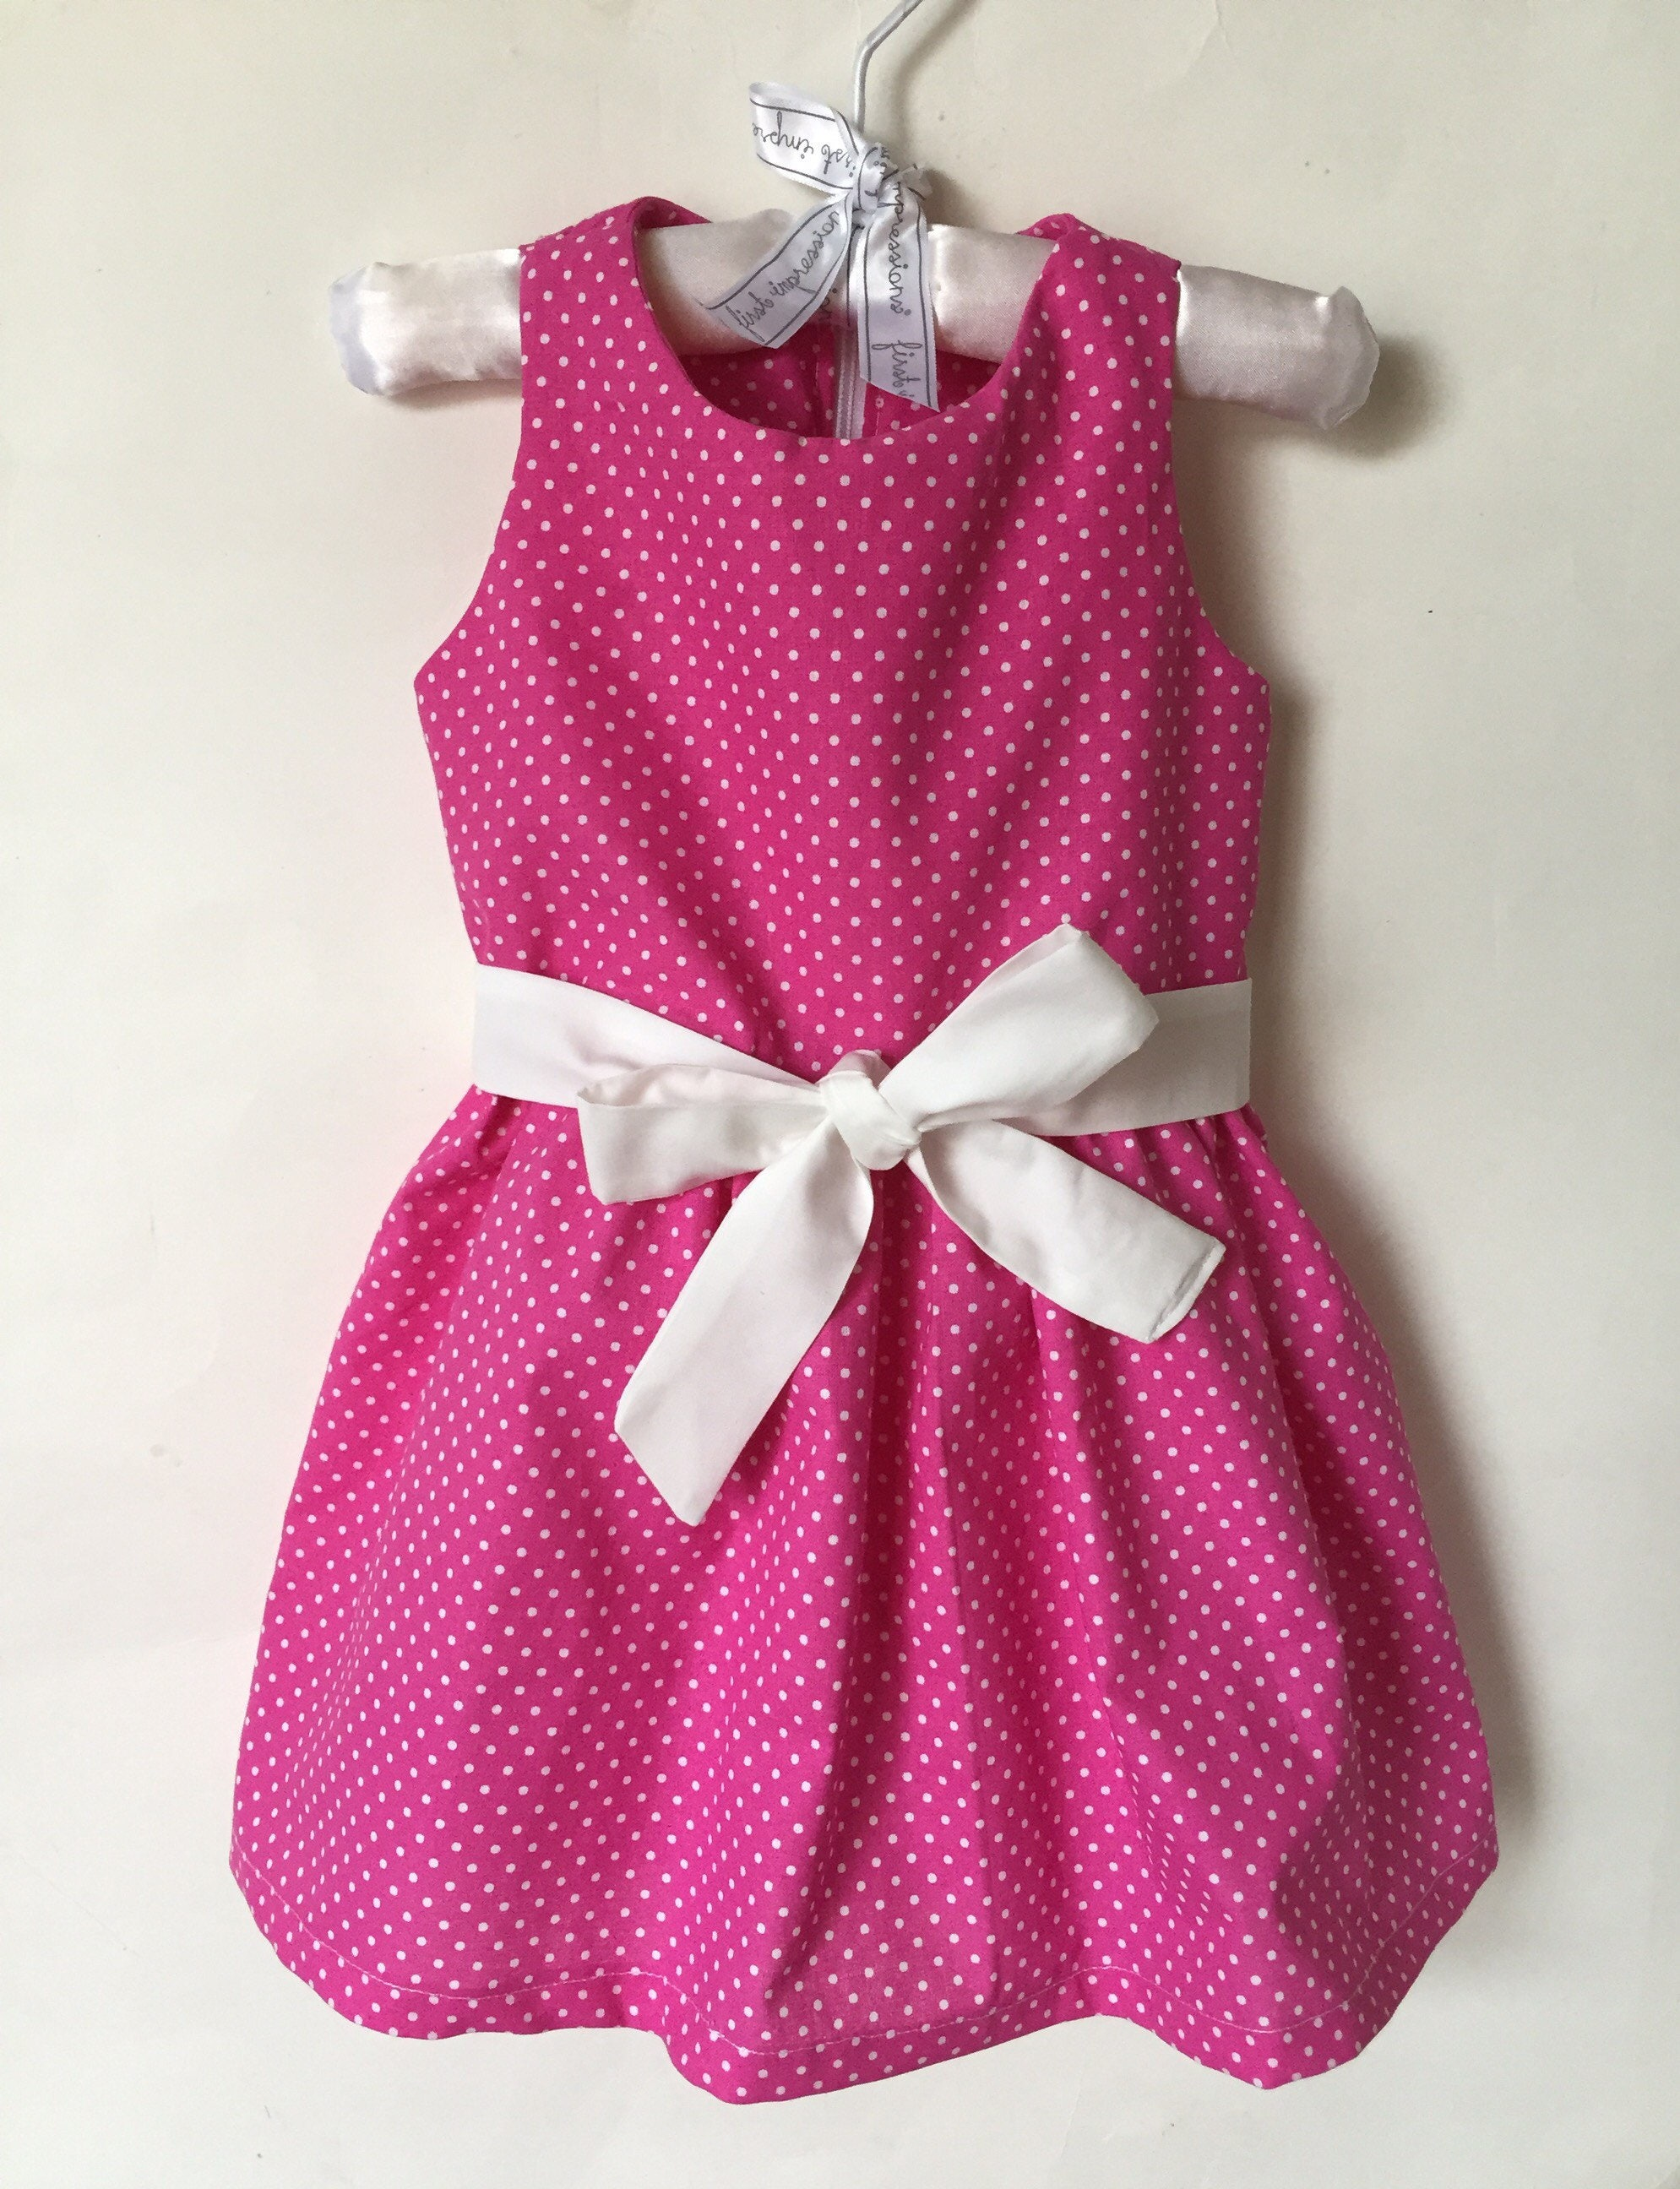 Handmade baby girl dress polka dot hot pink dress summer baby